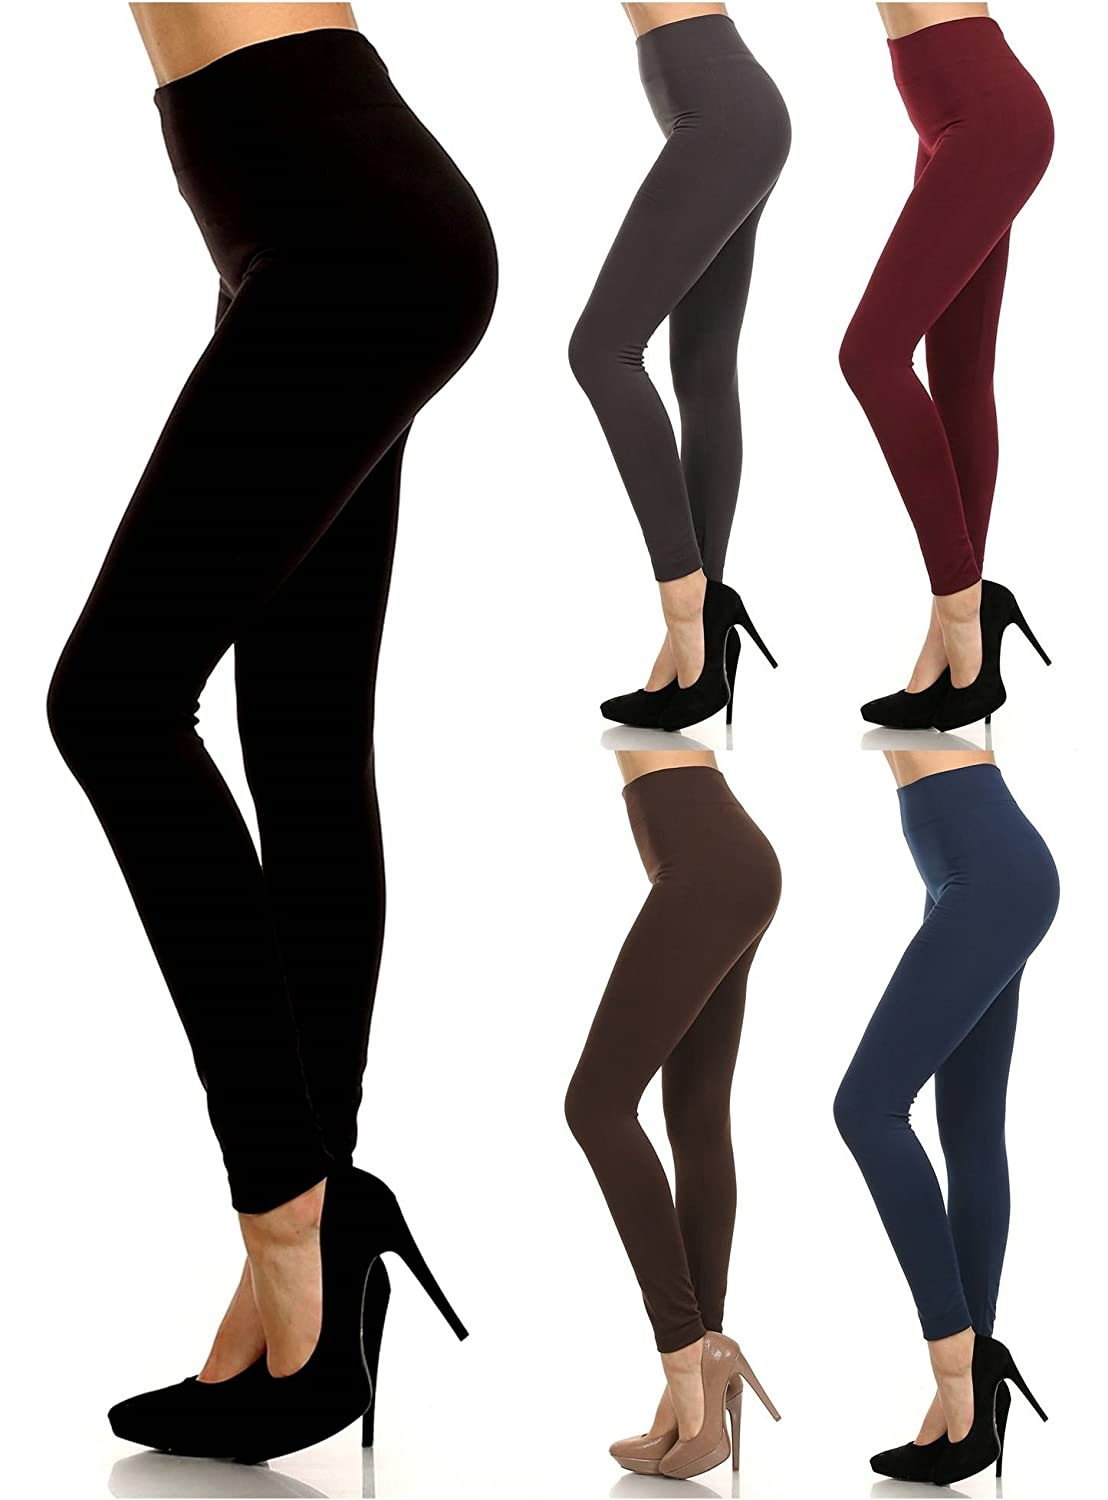 2ND DATE 6-Pack Of Seamless Fleece Lined Leggings - Stretchy Assorted Basic Colors